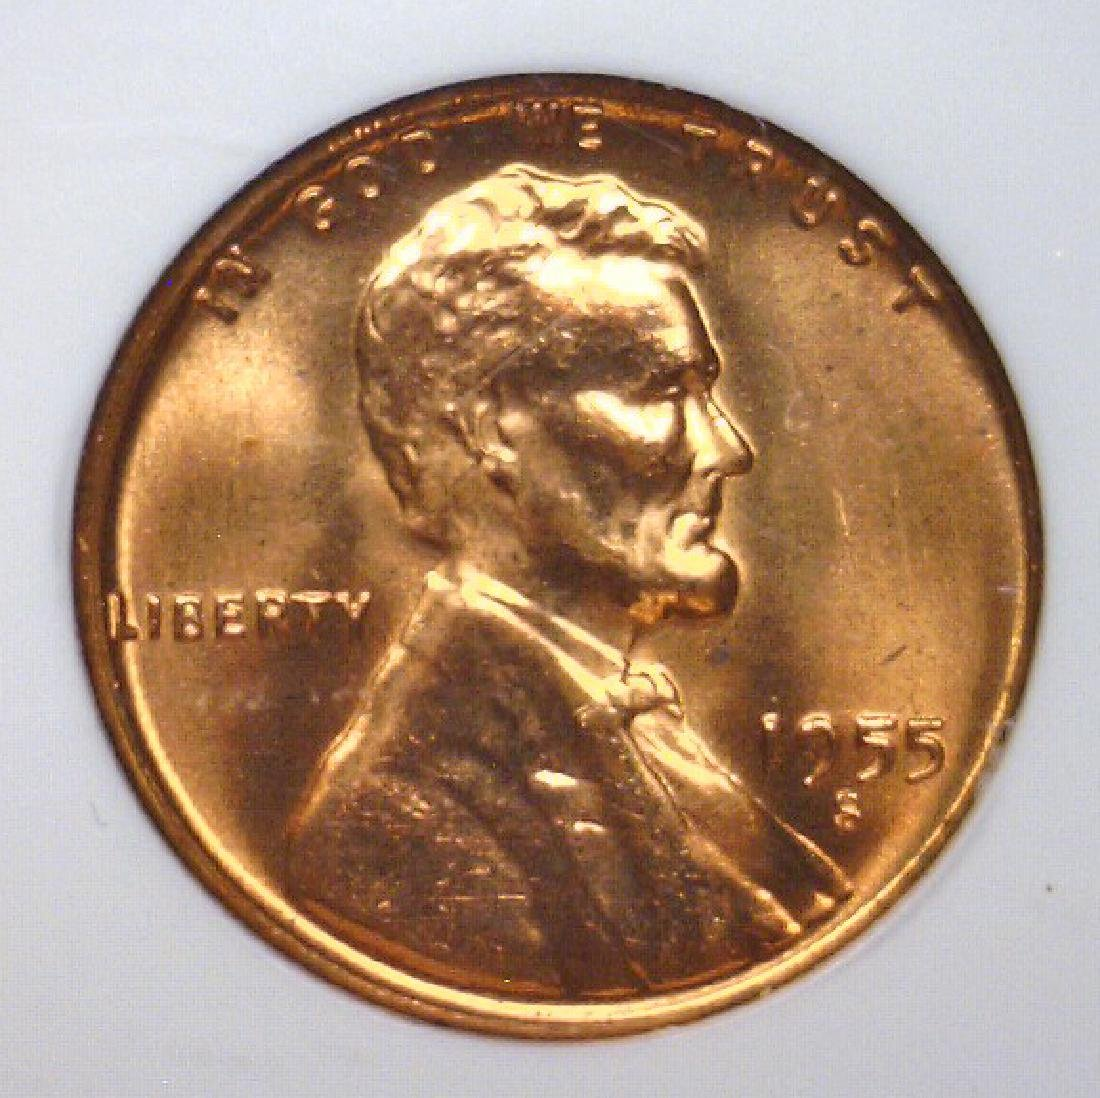 1955-S Lincoln Cent NGC MS66 RD